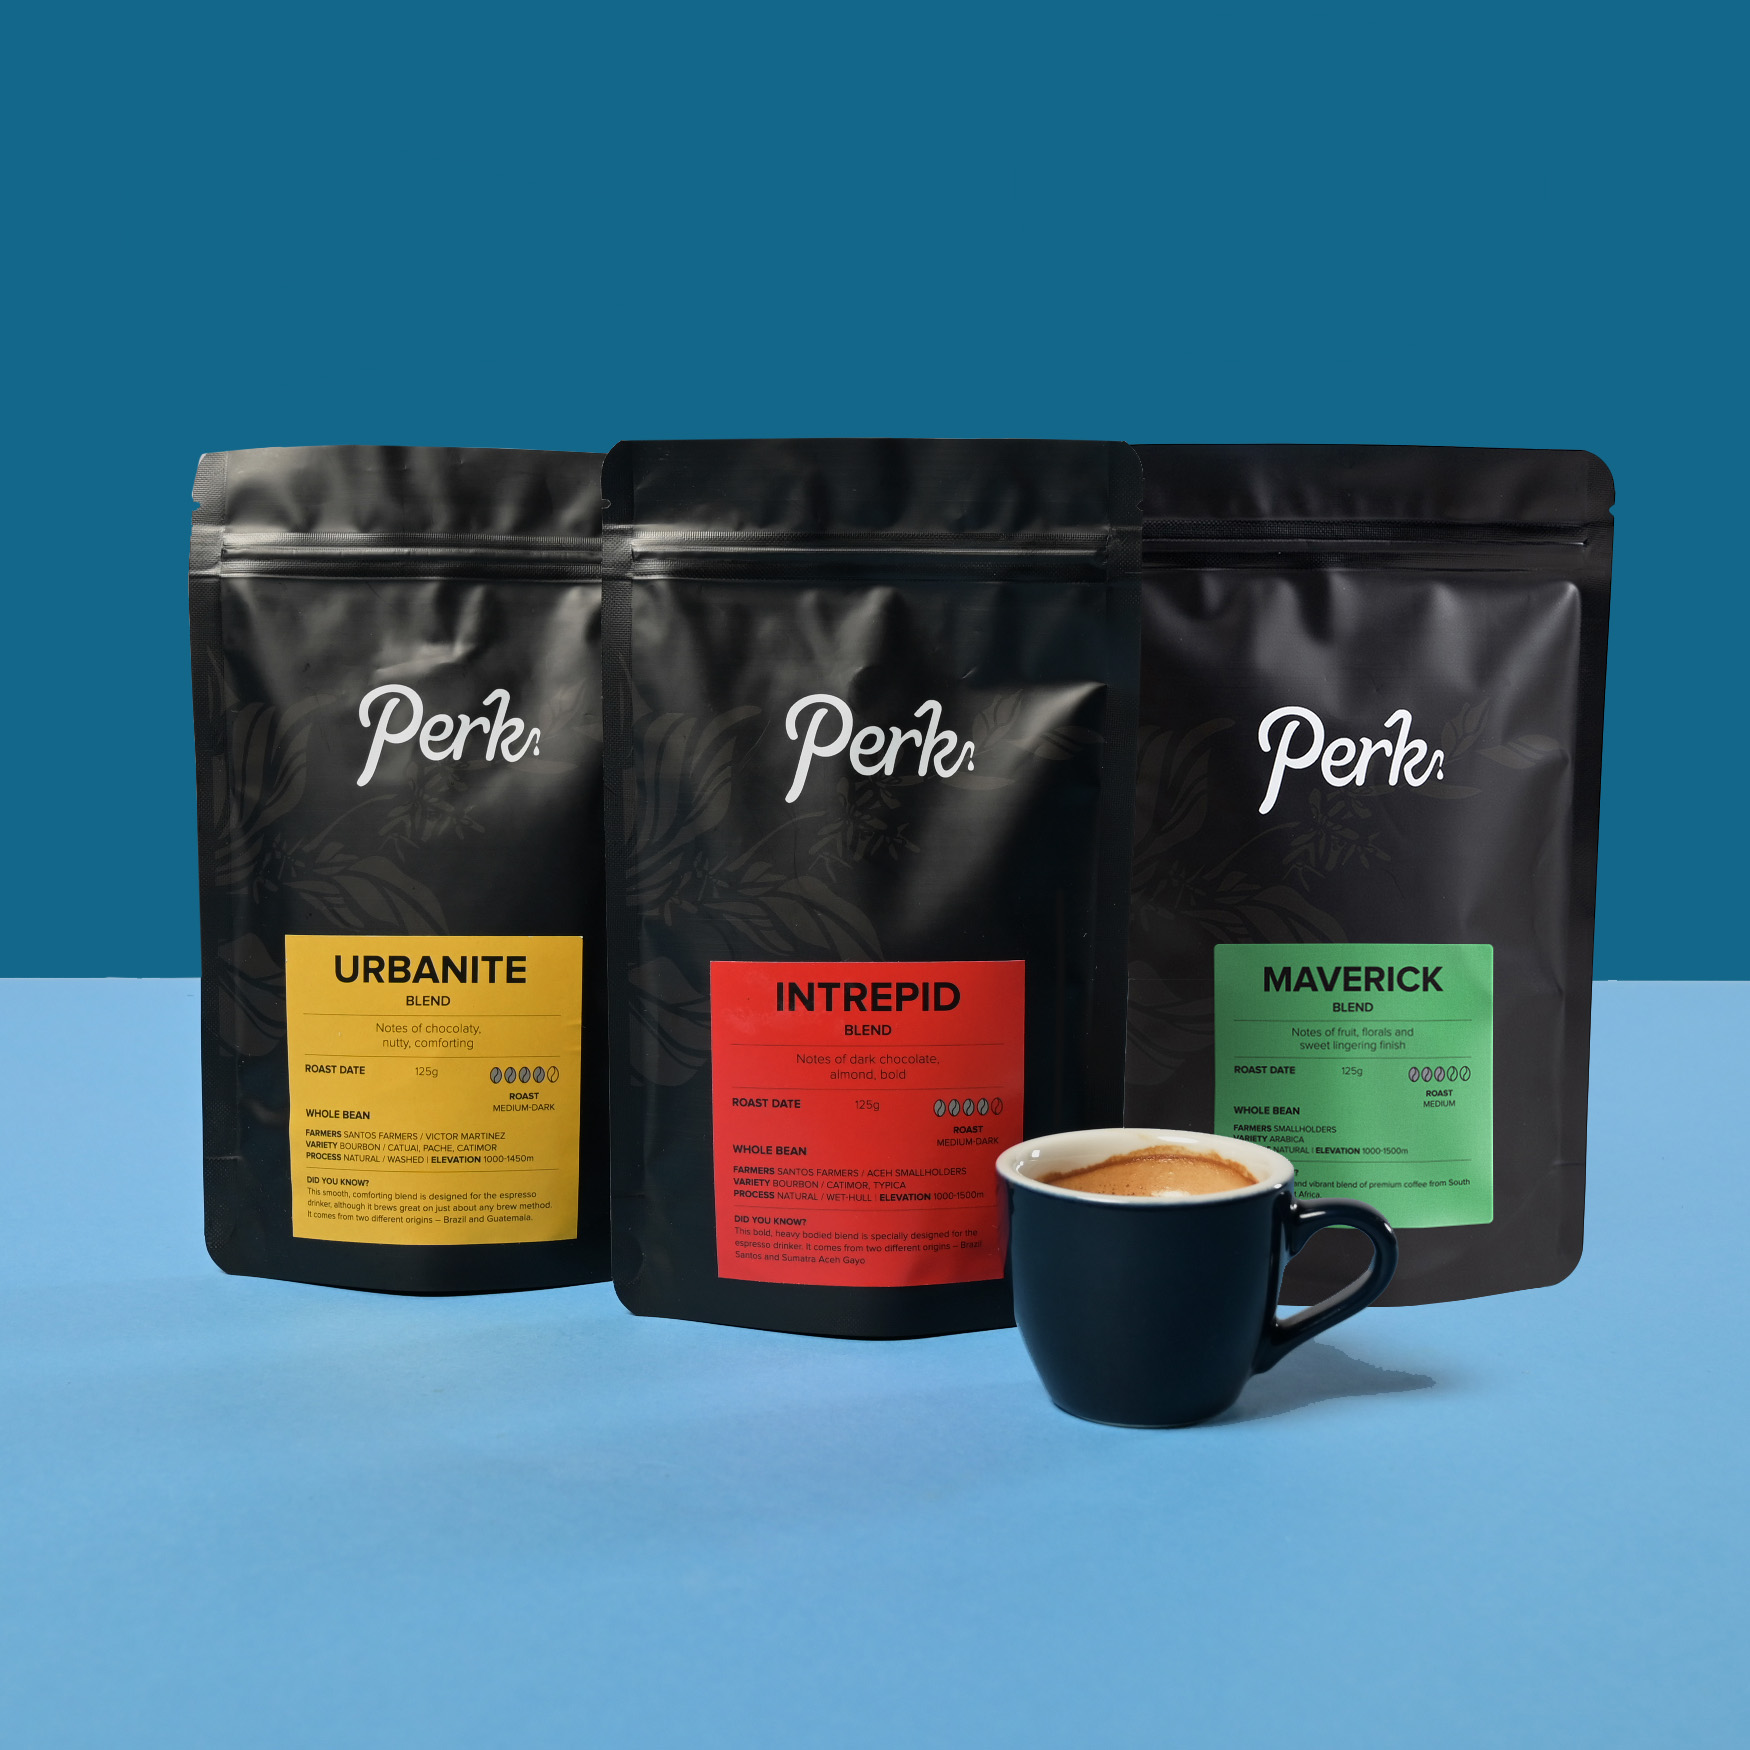 3 packets of coffee grounds from Perk